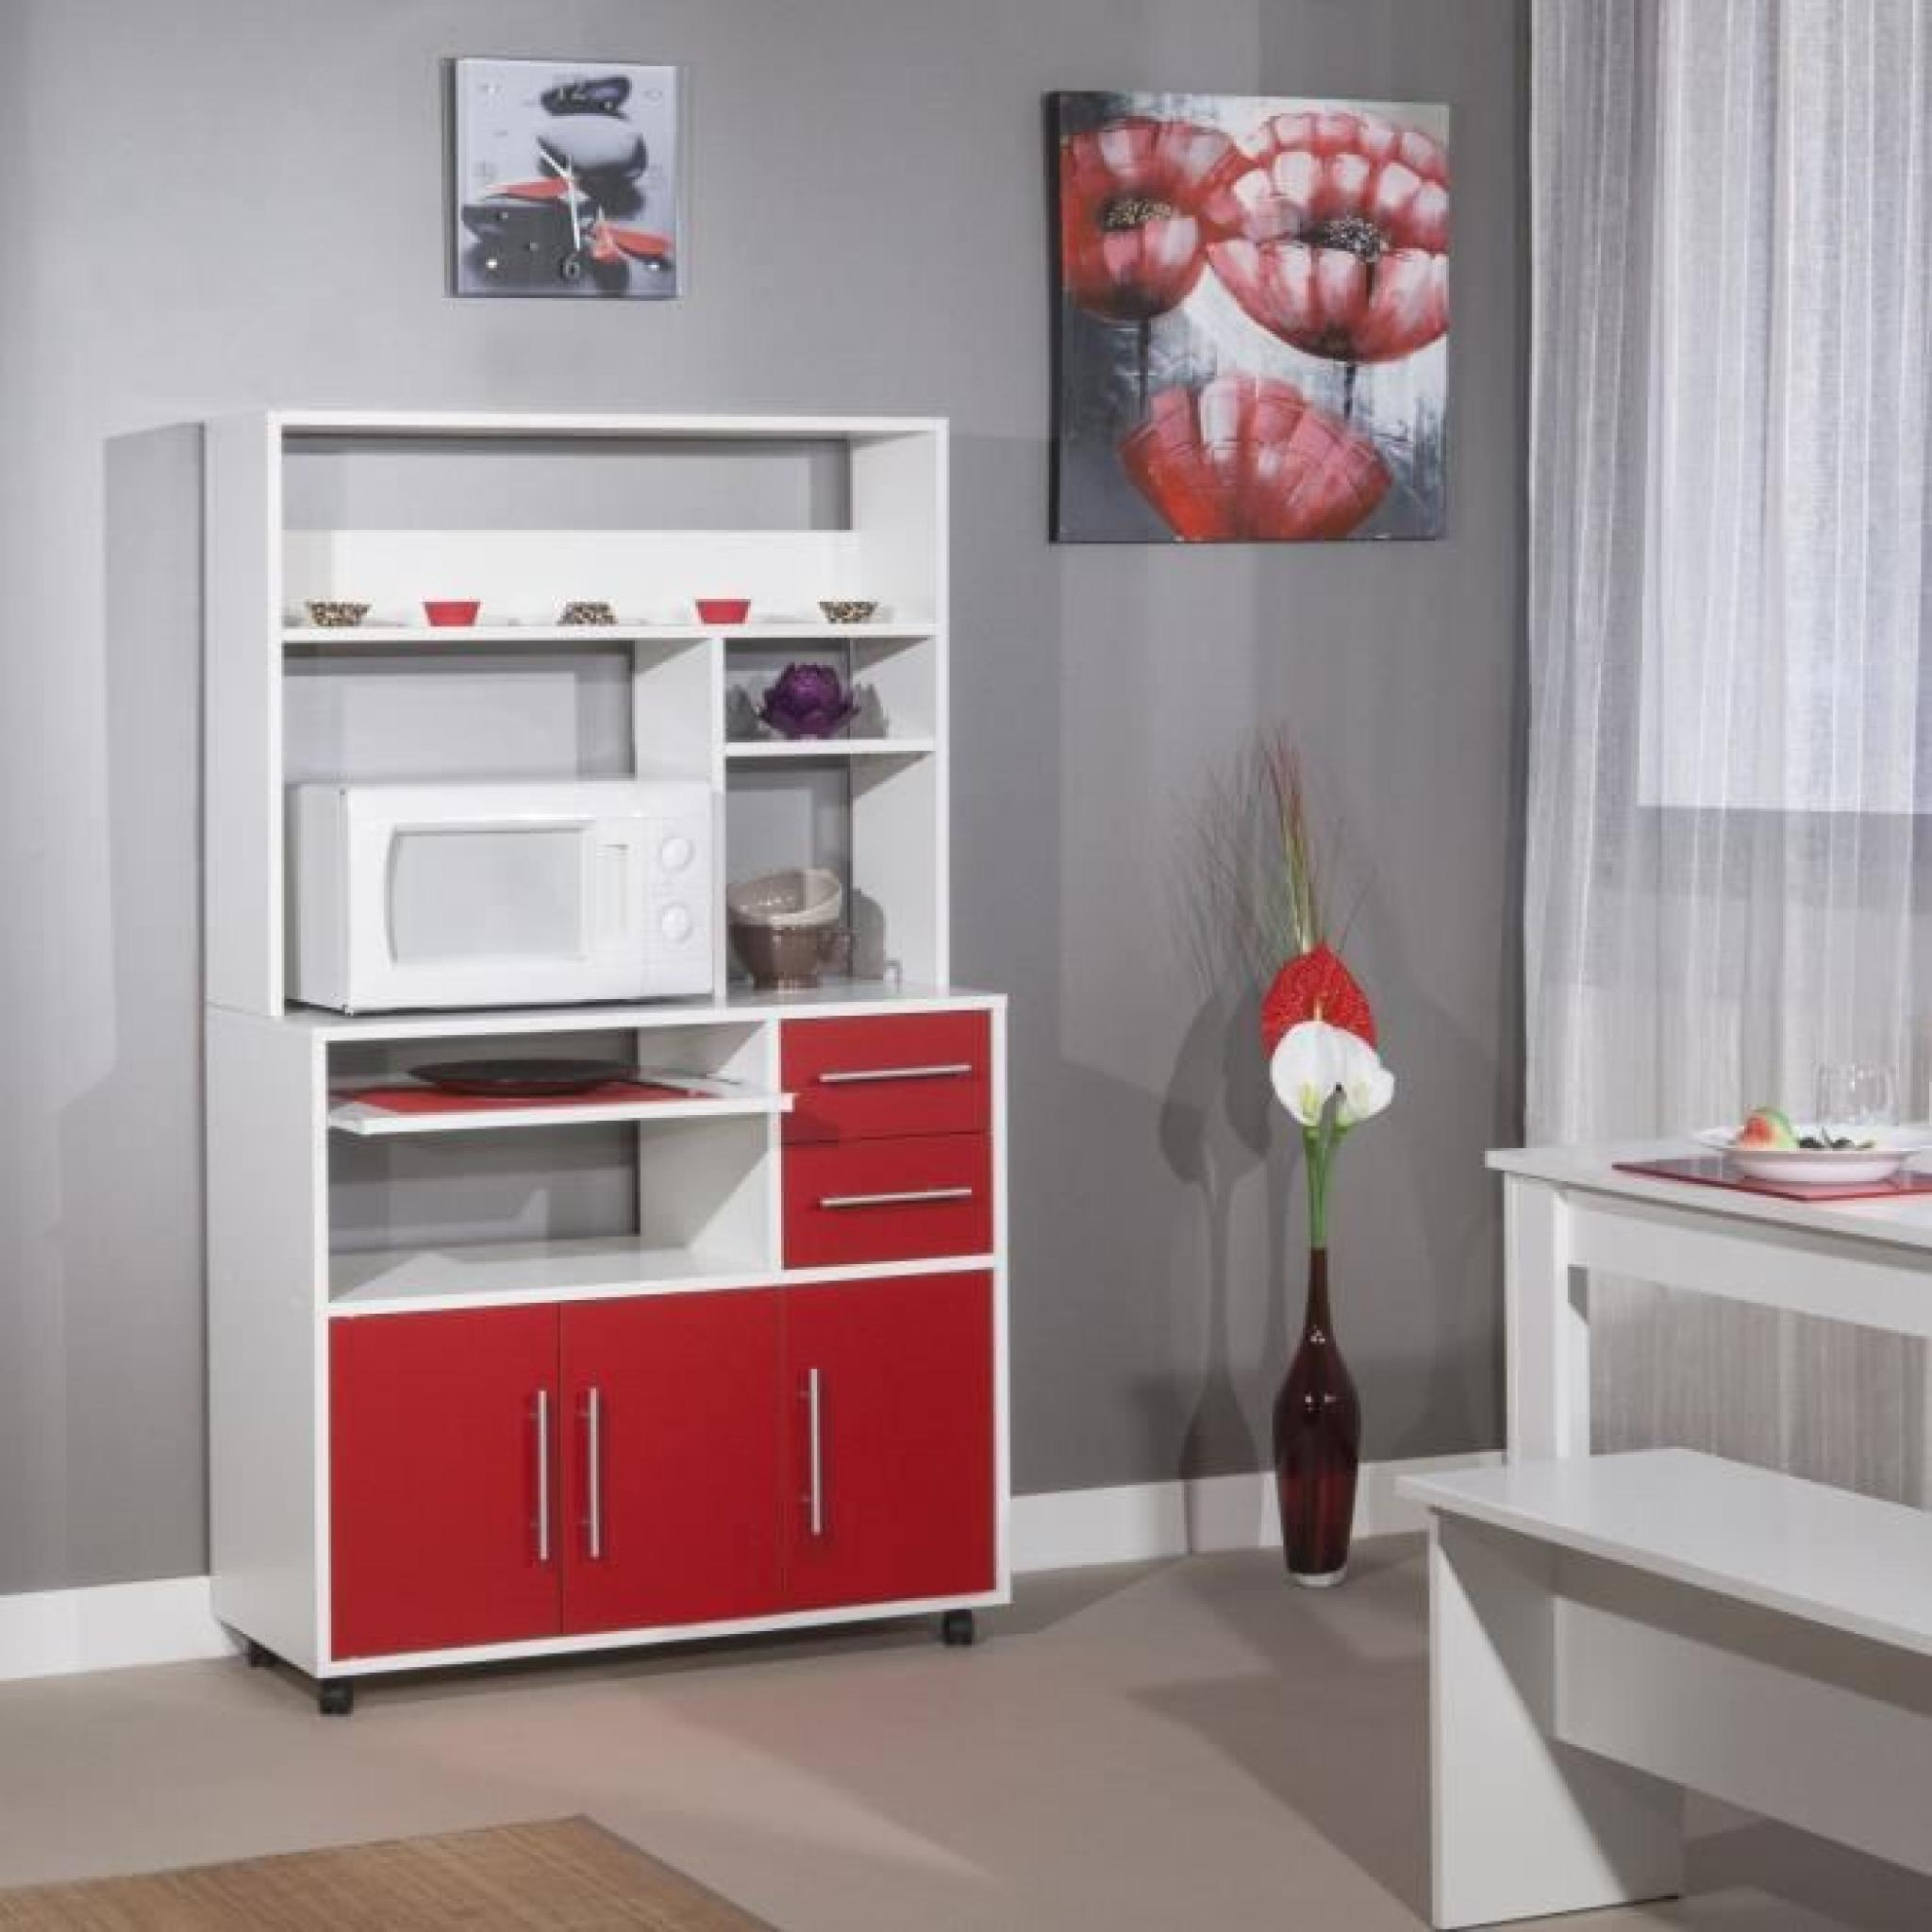 peps buffet de cuisine 89cm rouge et blanc achat vente. Black Bedroom Furniture Sets. Home Design Ideas